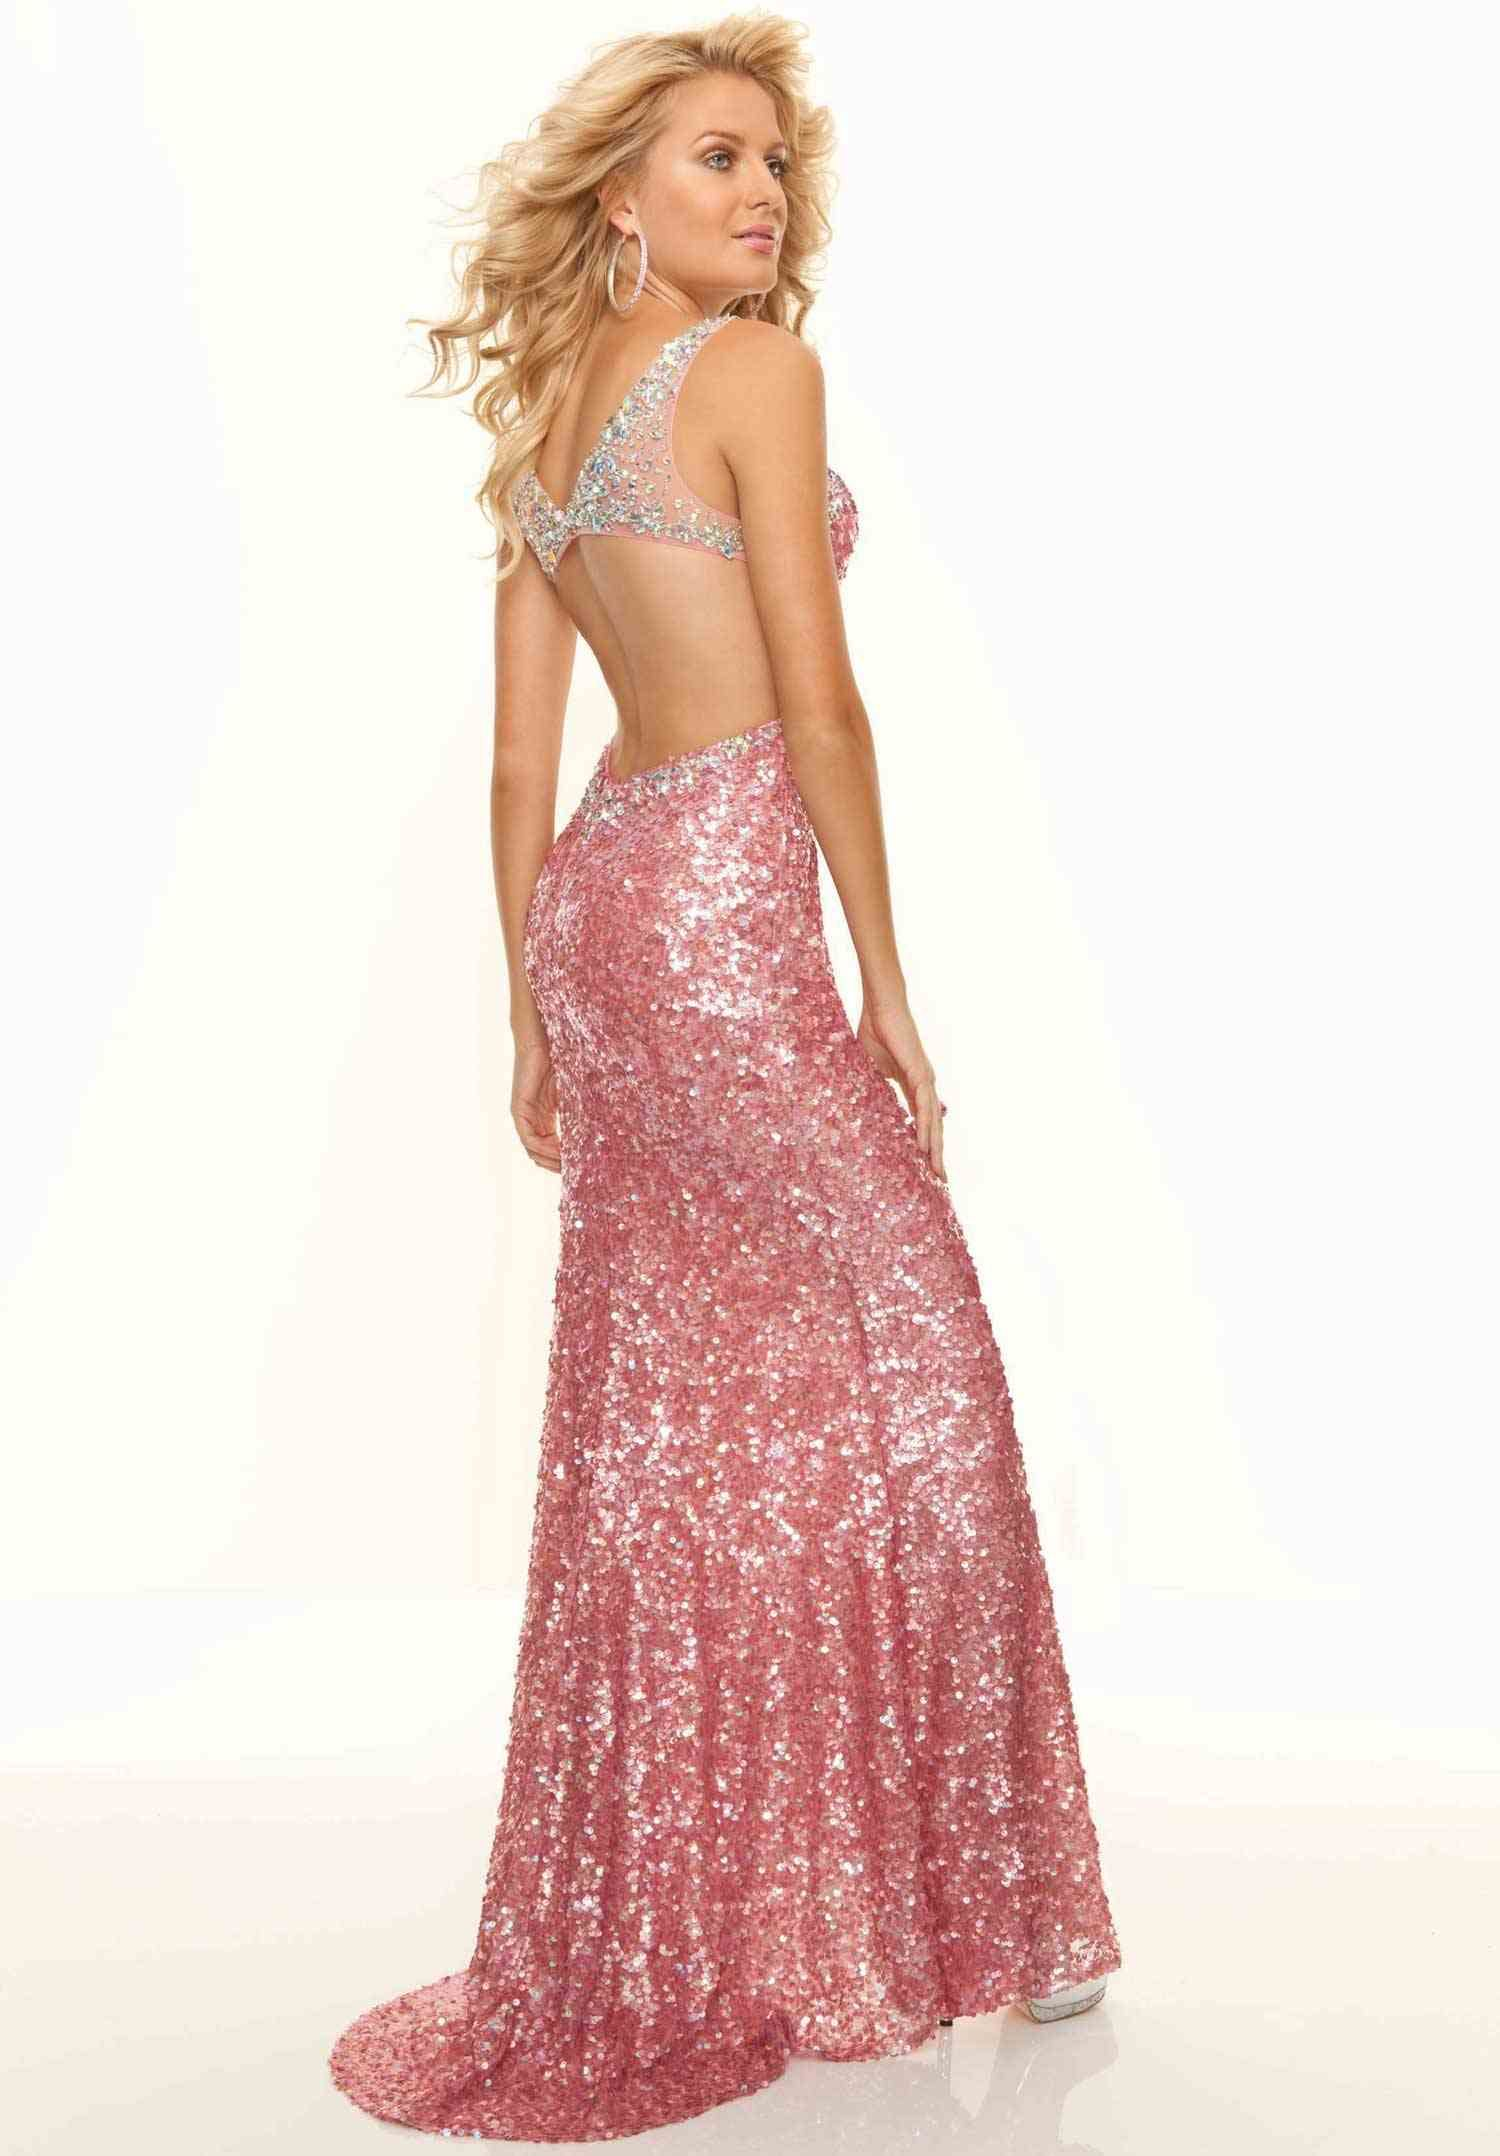 pink sparkly prom dresses - Google Search | prom | Pinterest ...